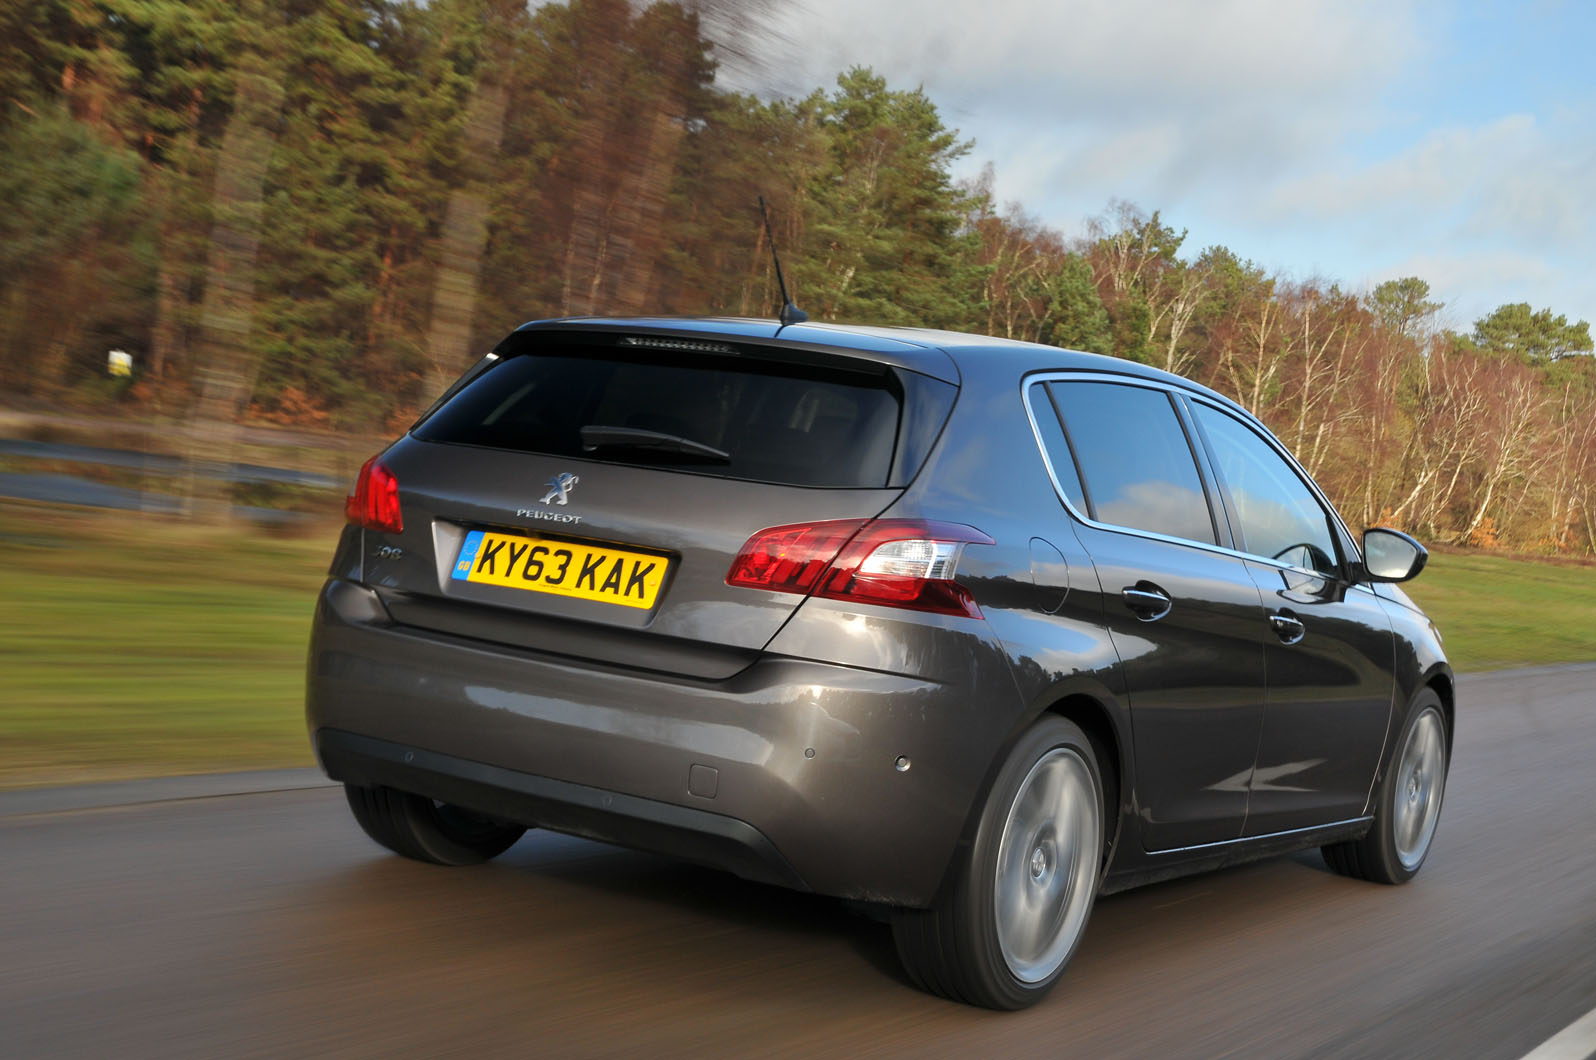 peugeot 308 bluehdi 150 feline first drive review autocar. Black Bedroom Furniture Sets. Home Design Ideas